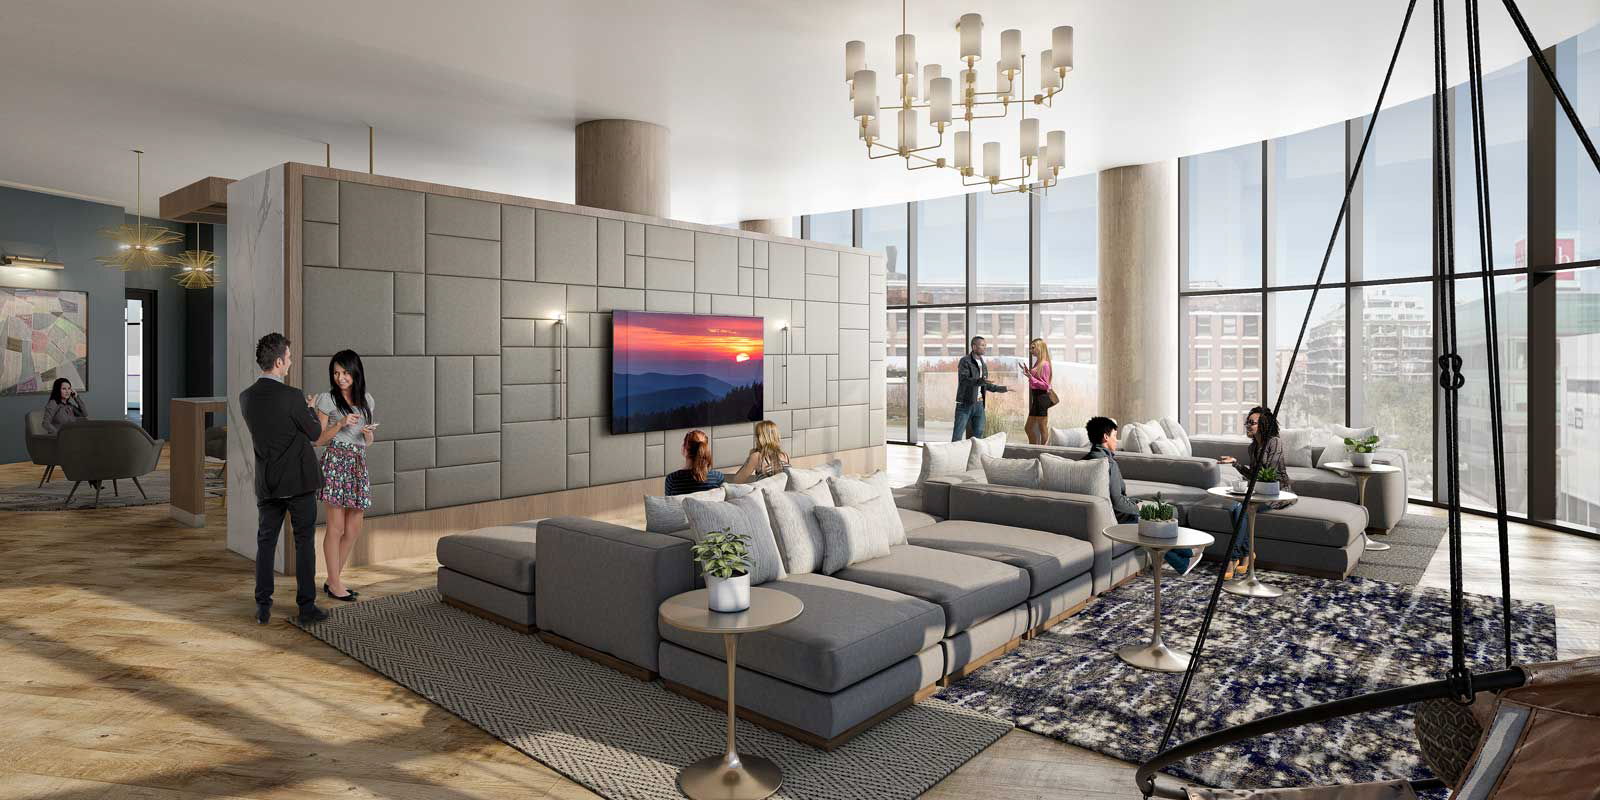 Luxury Apartments For Rent Near Looking For Luxury Apartments For Rent Near West Loop? 13